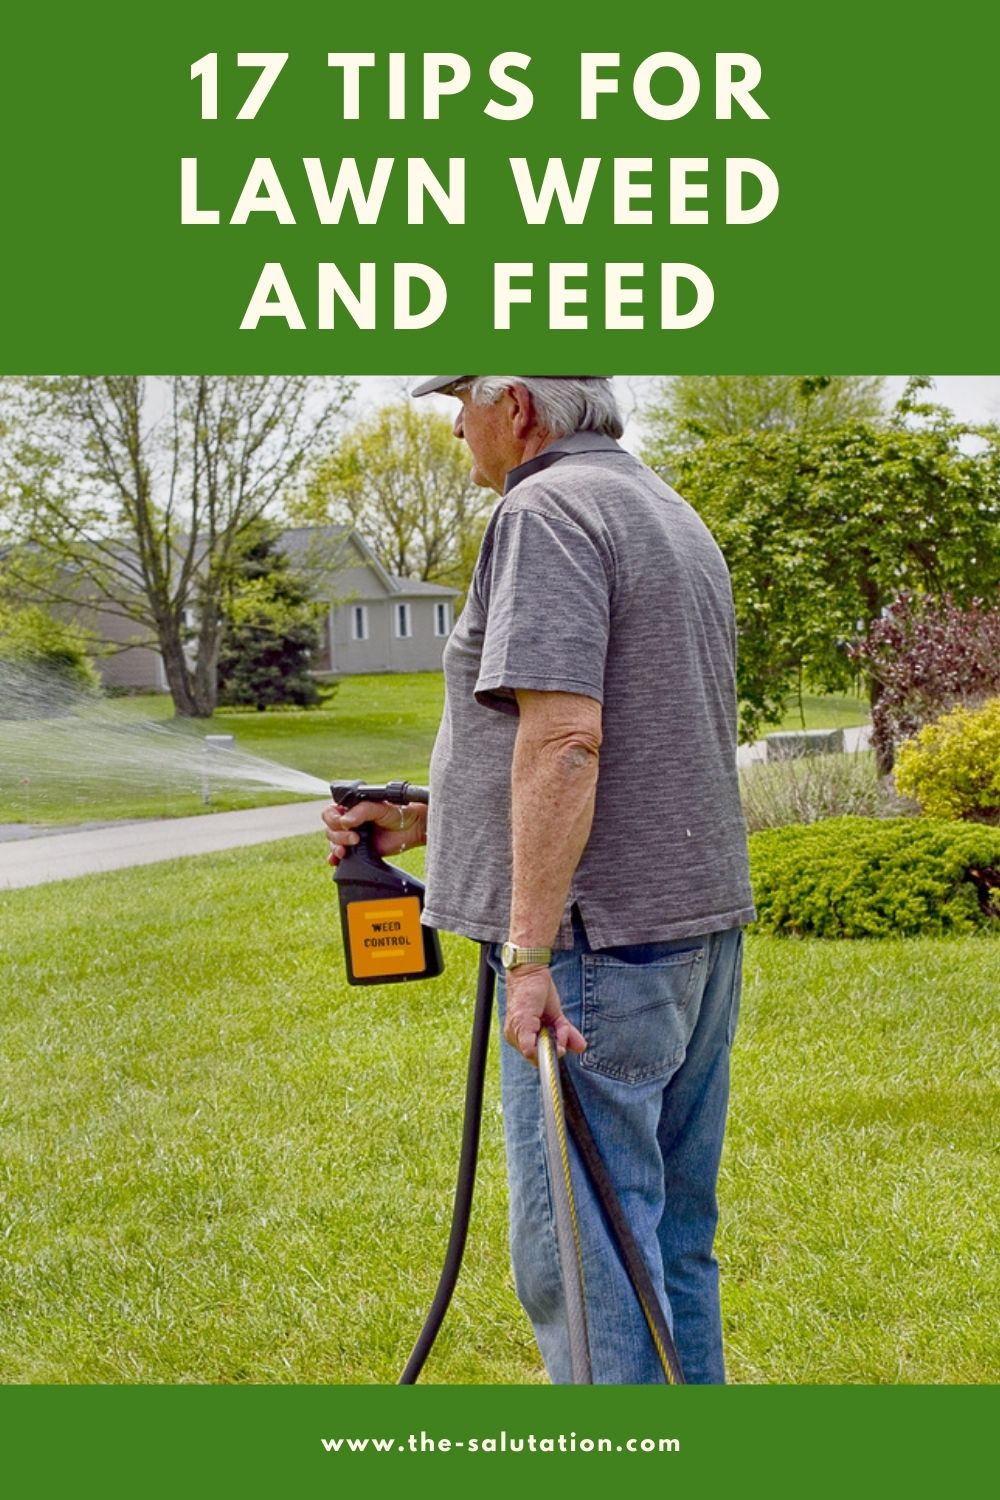 17 Tips for Lawn Weed and Feed 2